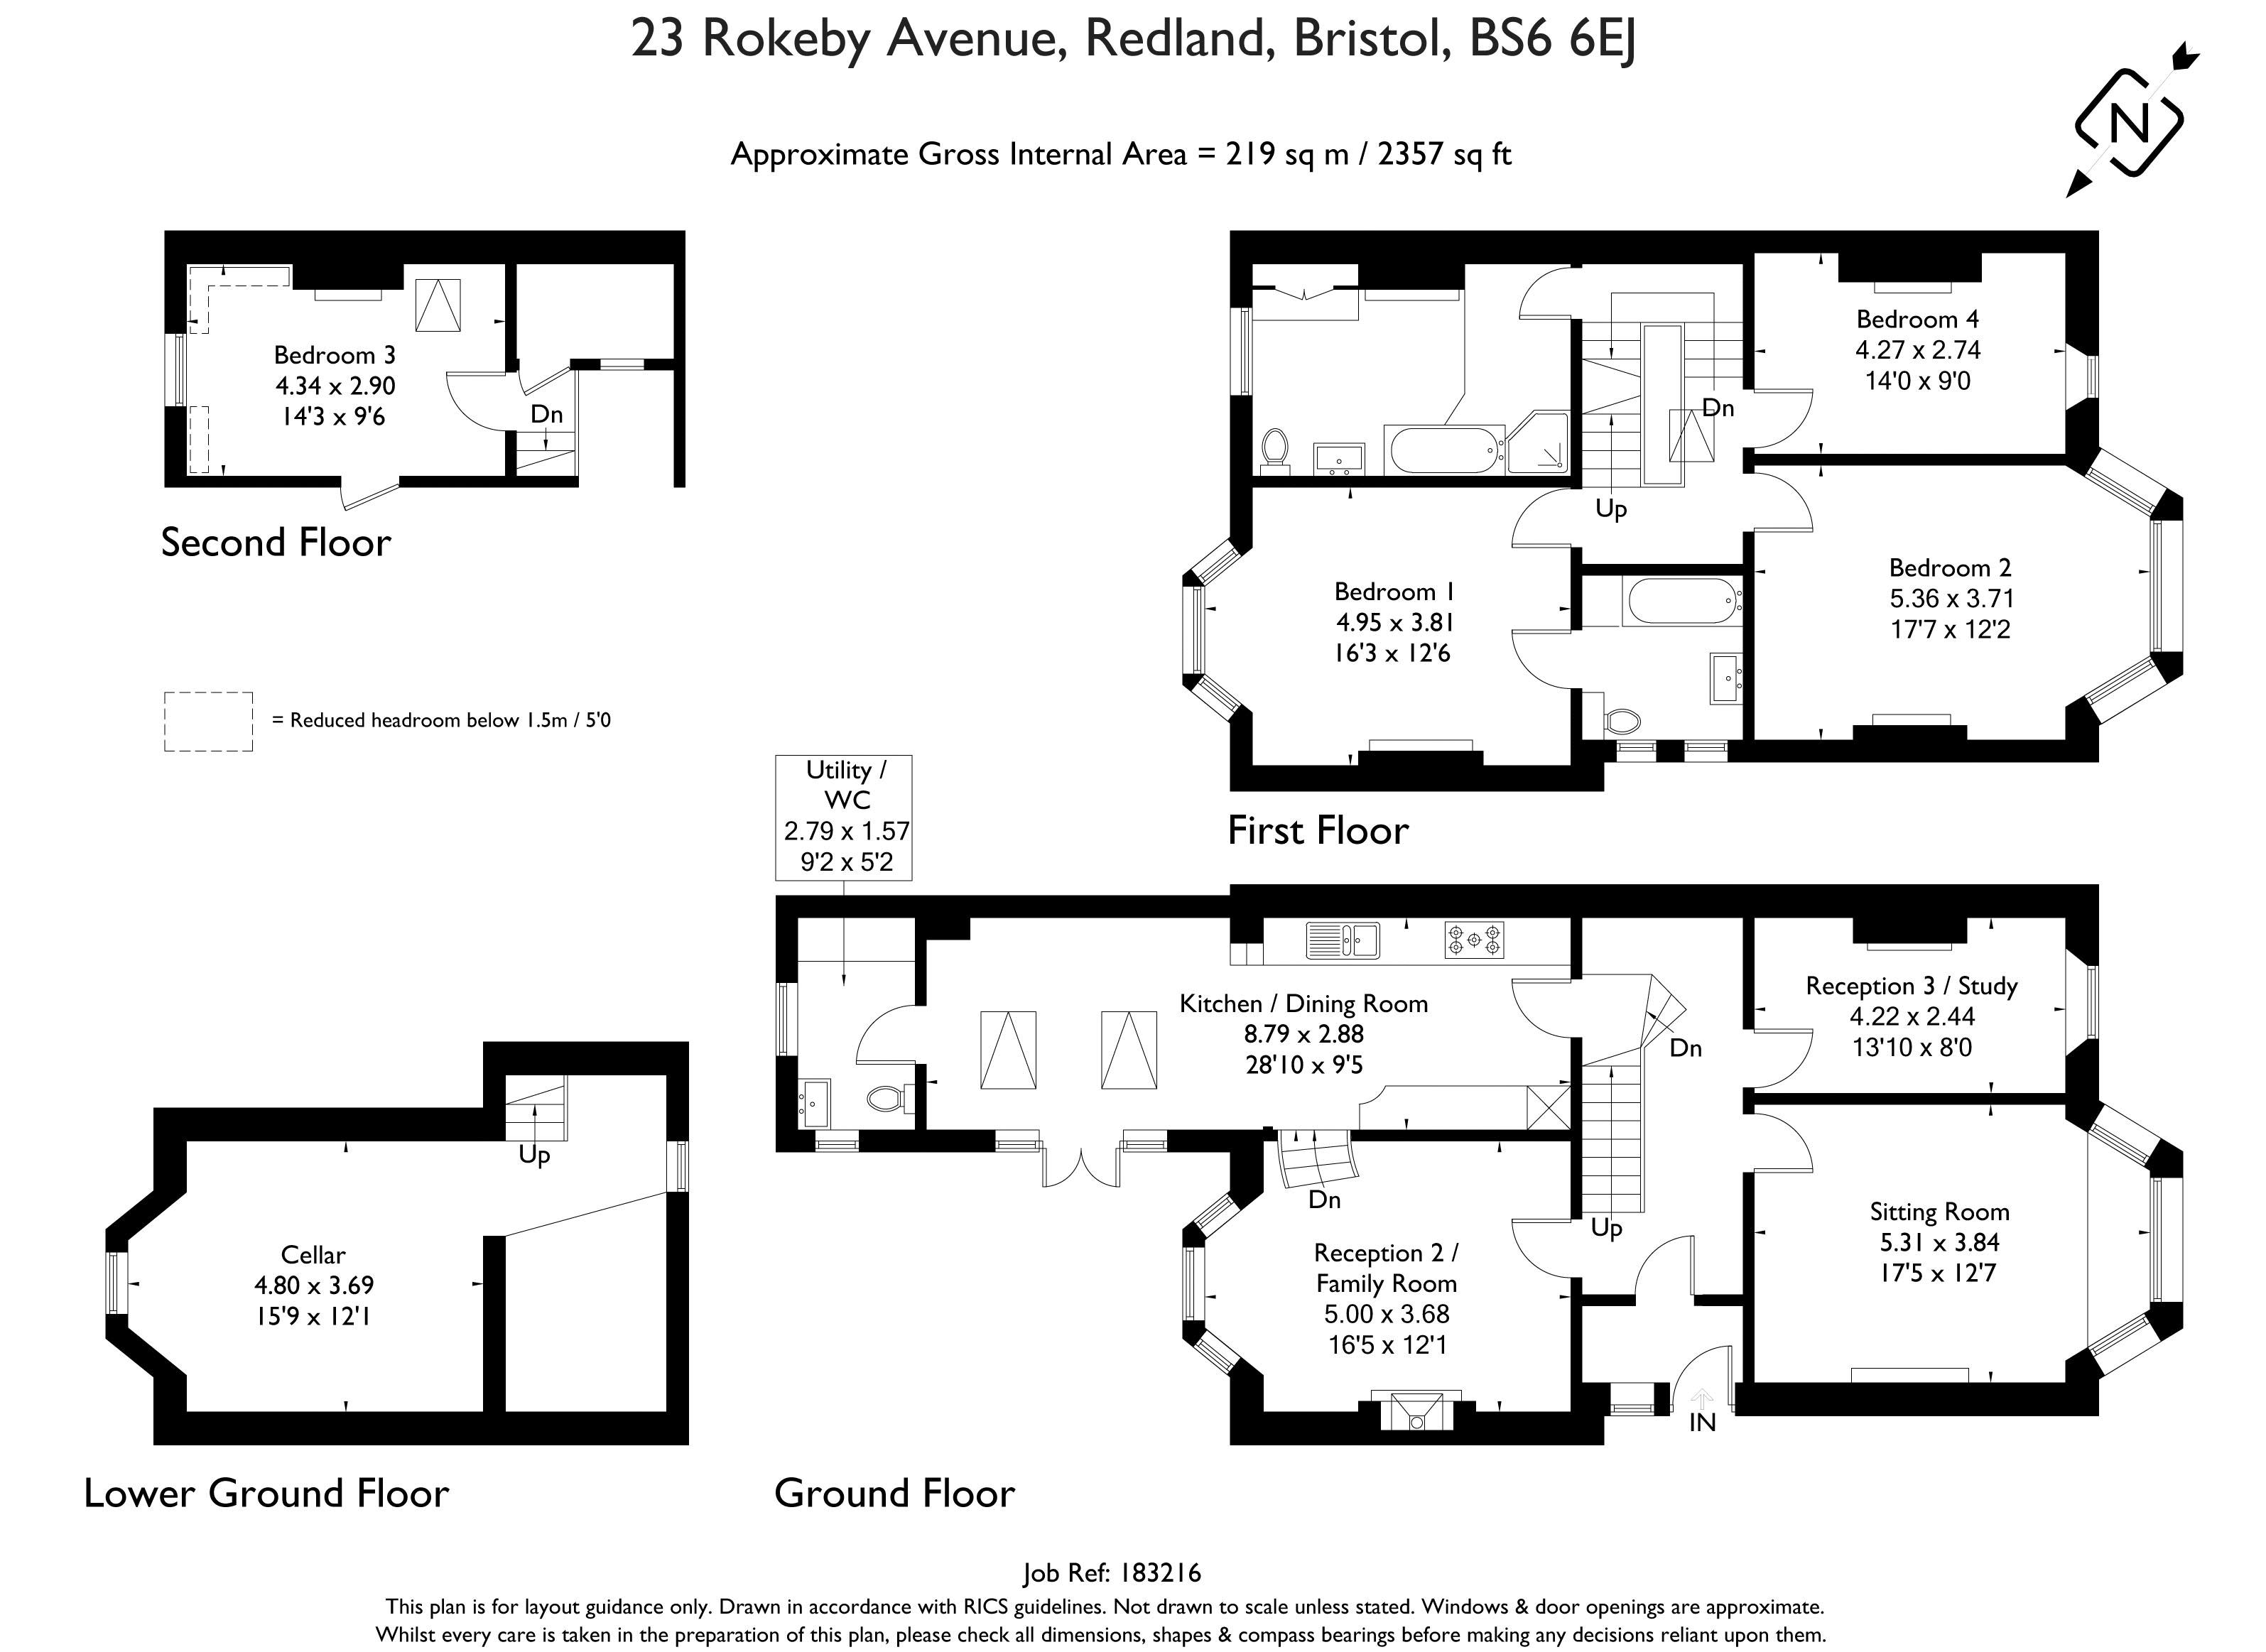 4 bedroom property for sale in rokeby avenue redland 950 000